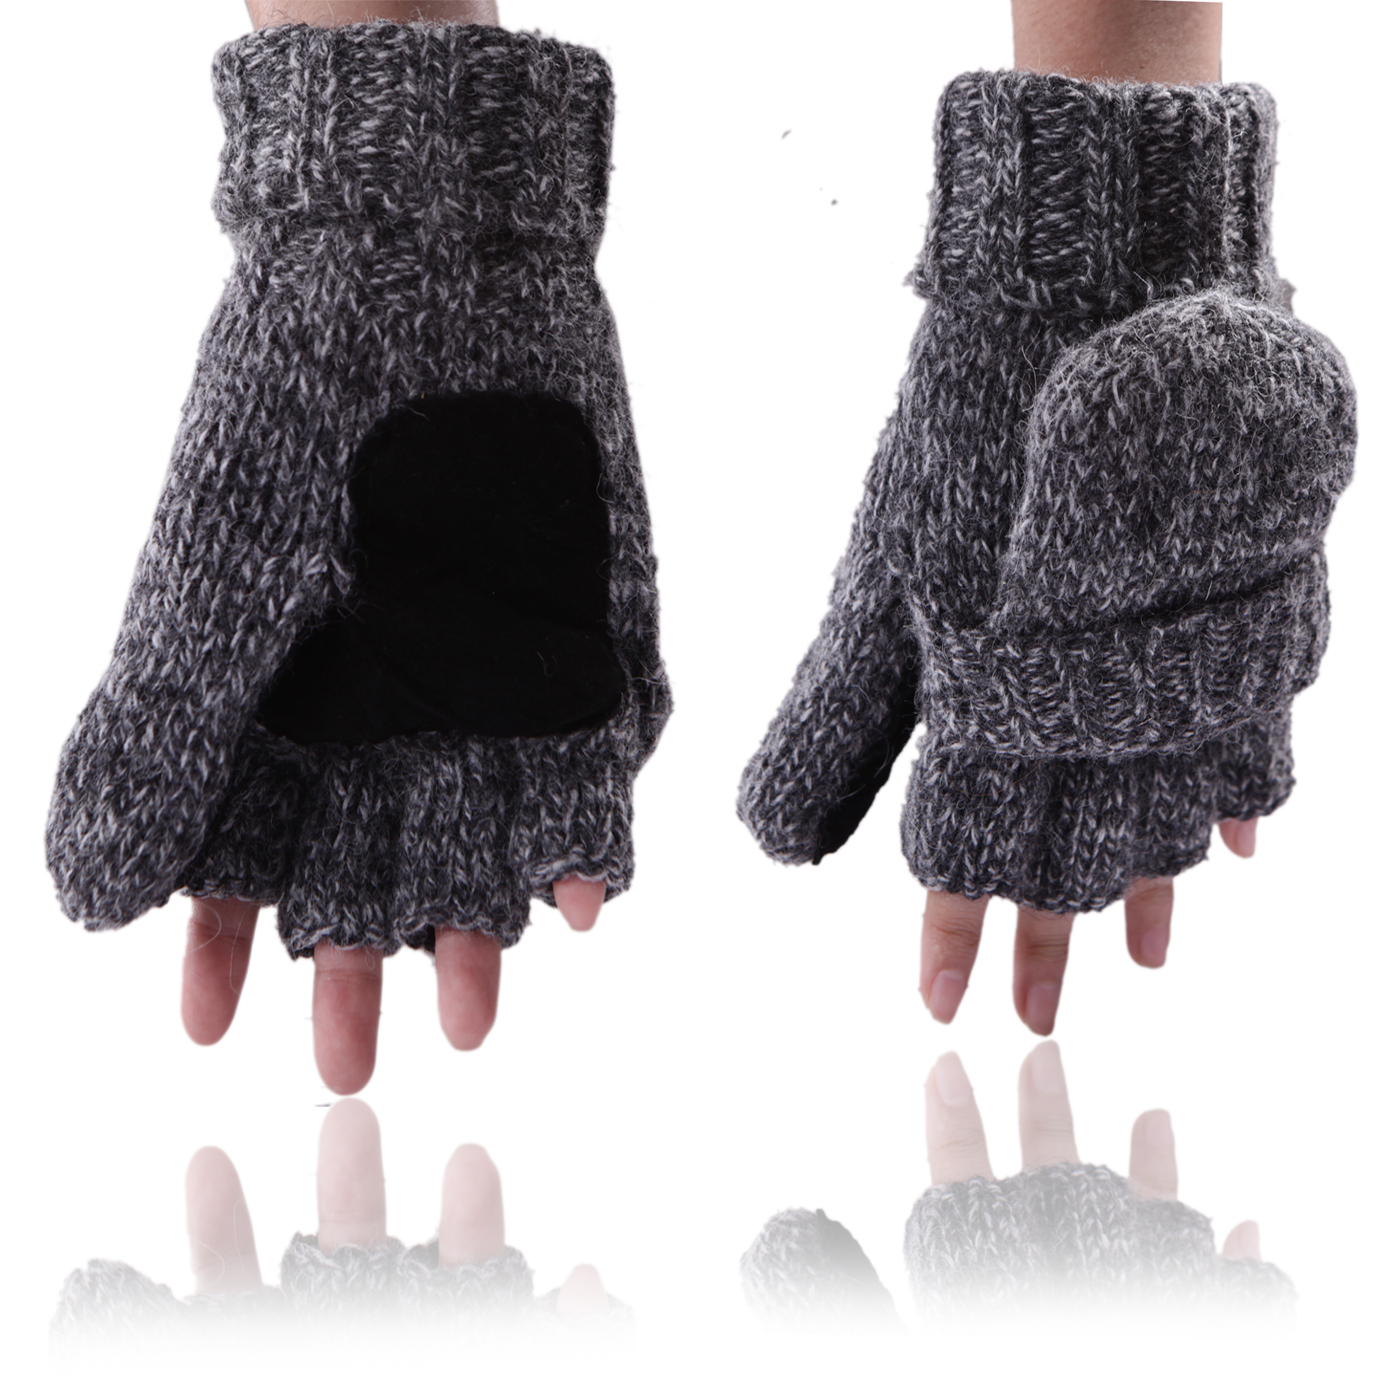 HDE Fingerless Winter Gloves Flipover Insulated Thermal Knit Texting Mittens (Gray)